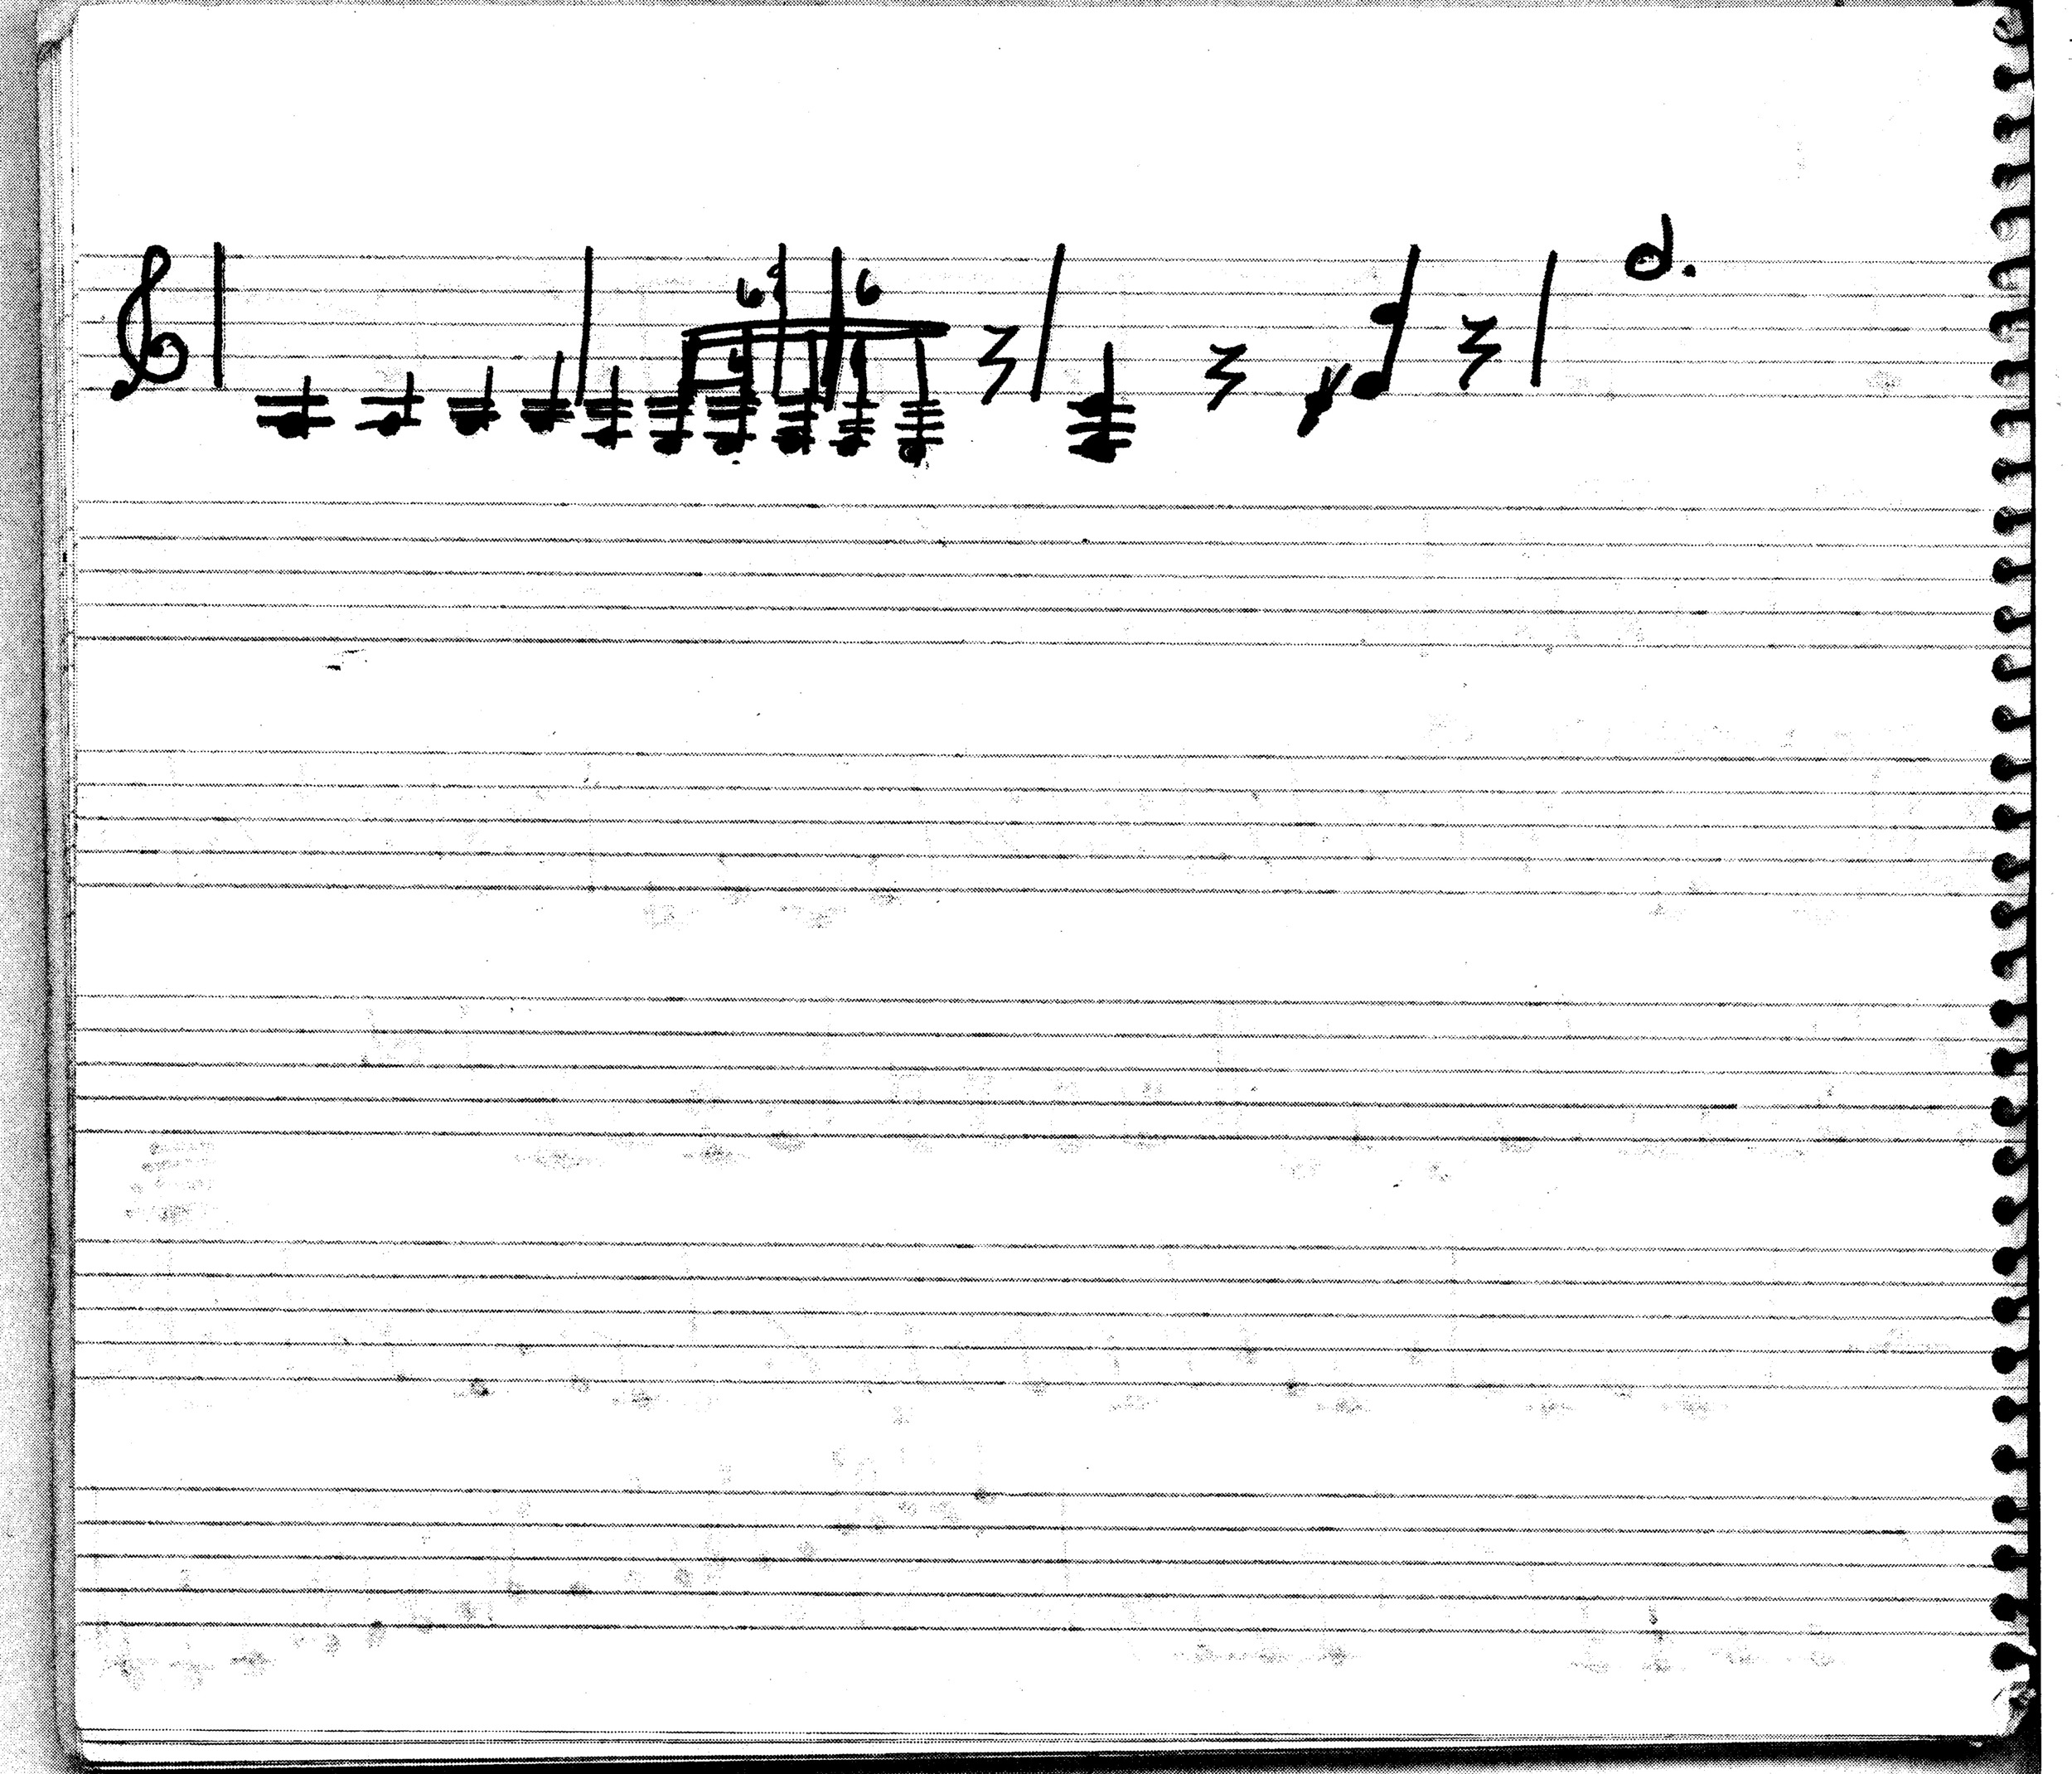 00A - Sonata for Three Percussion Instruments, Op. 1_Page_5.jpg